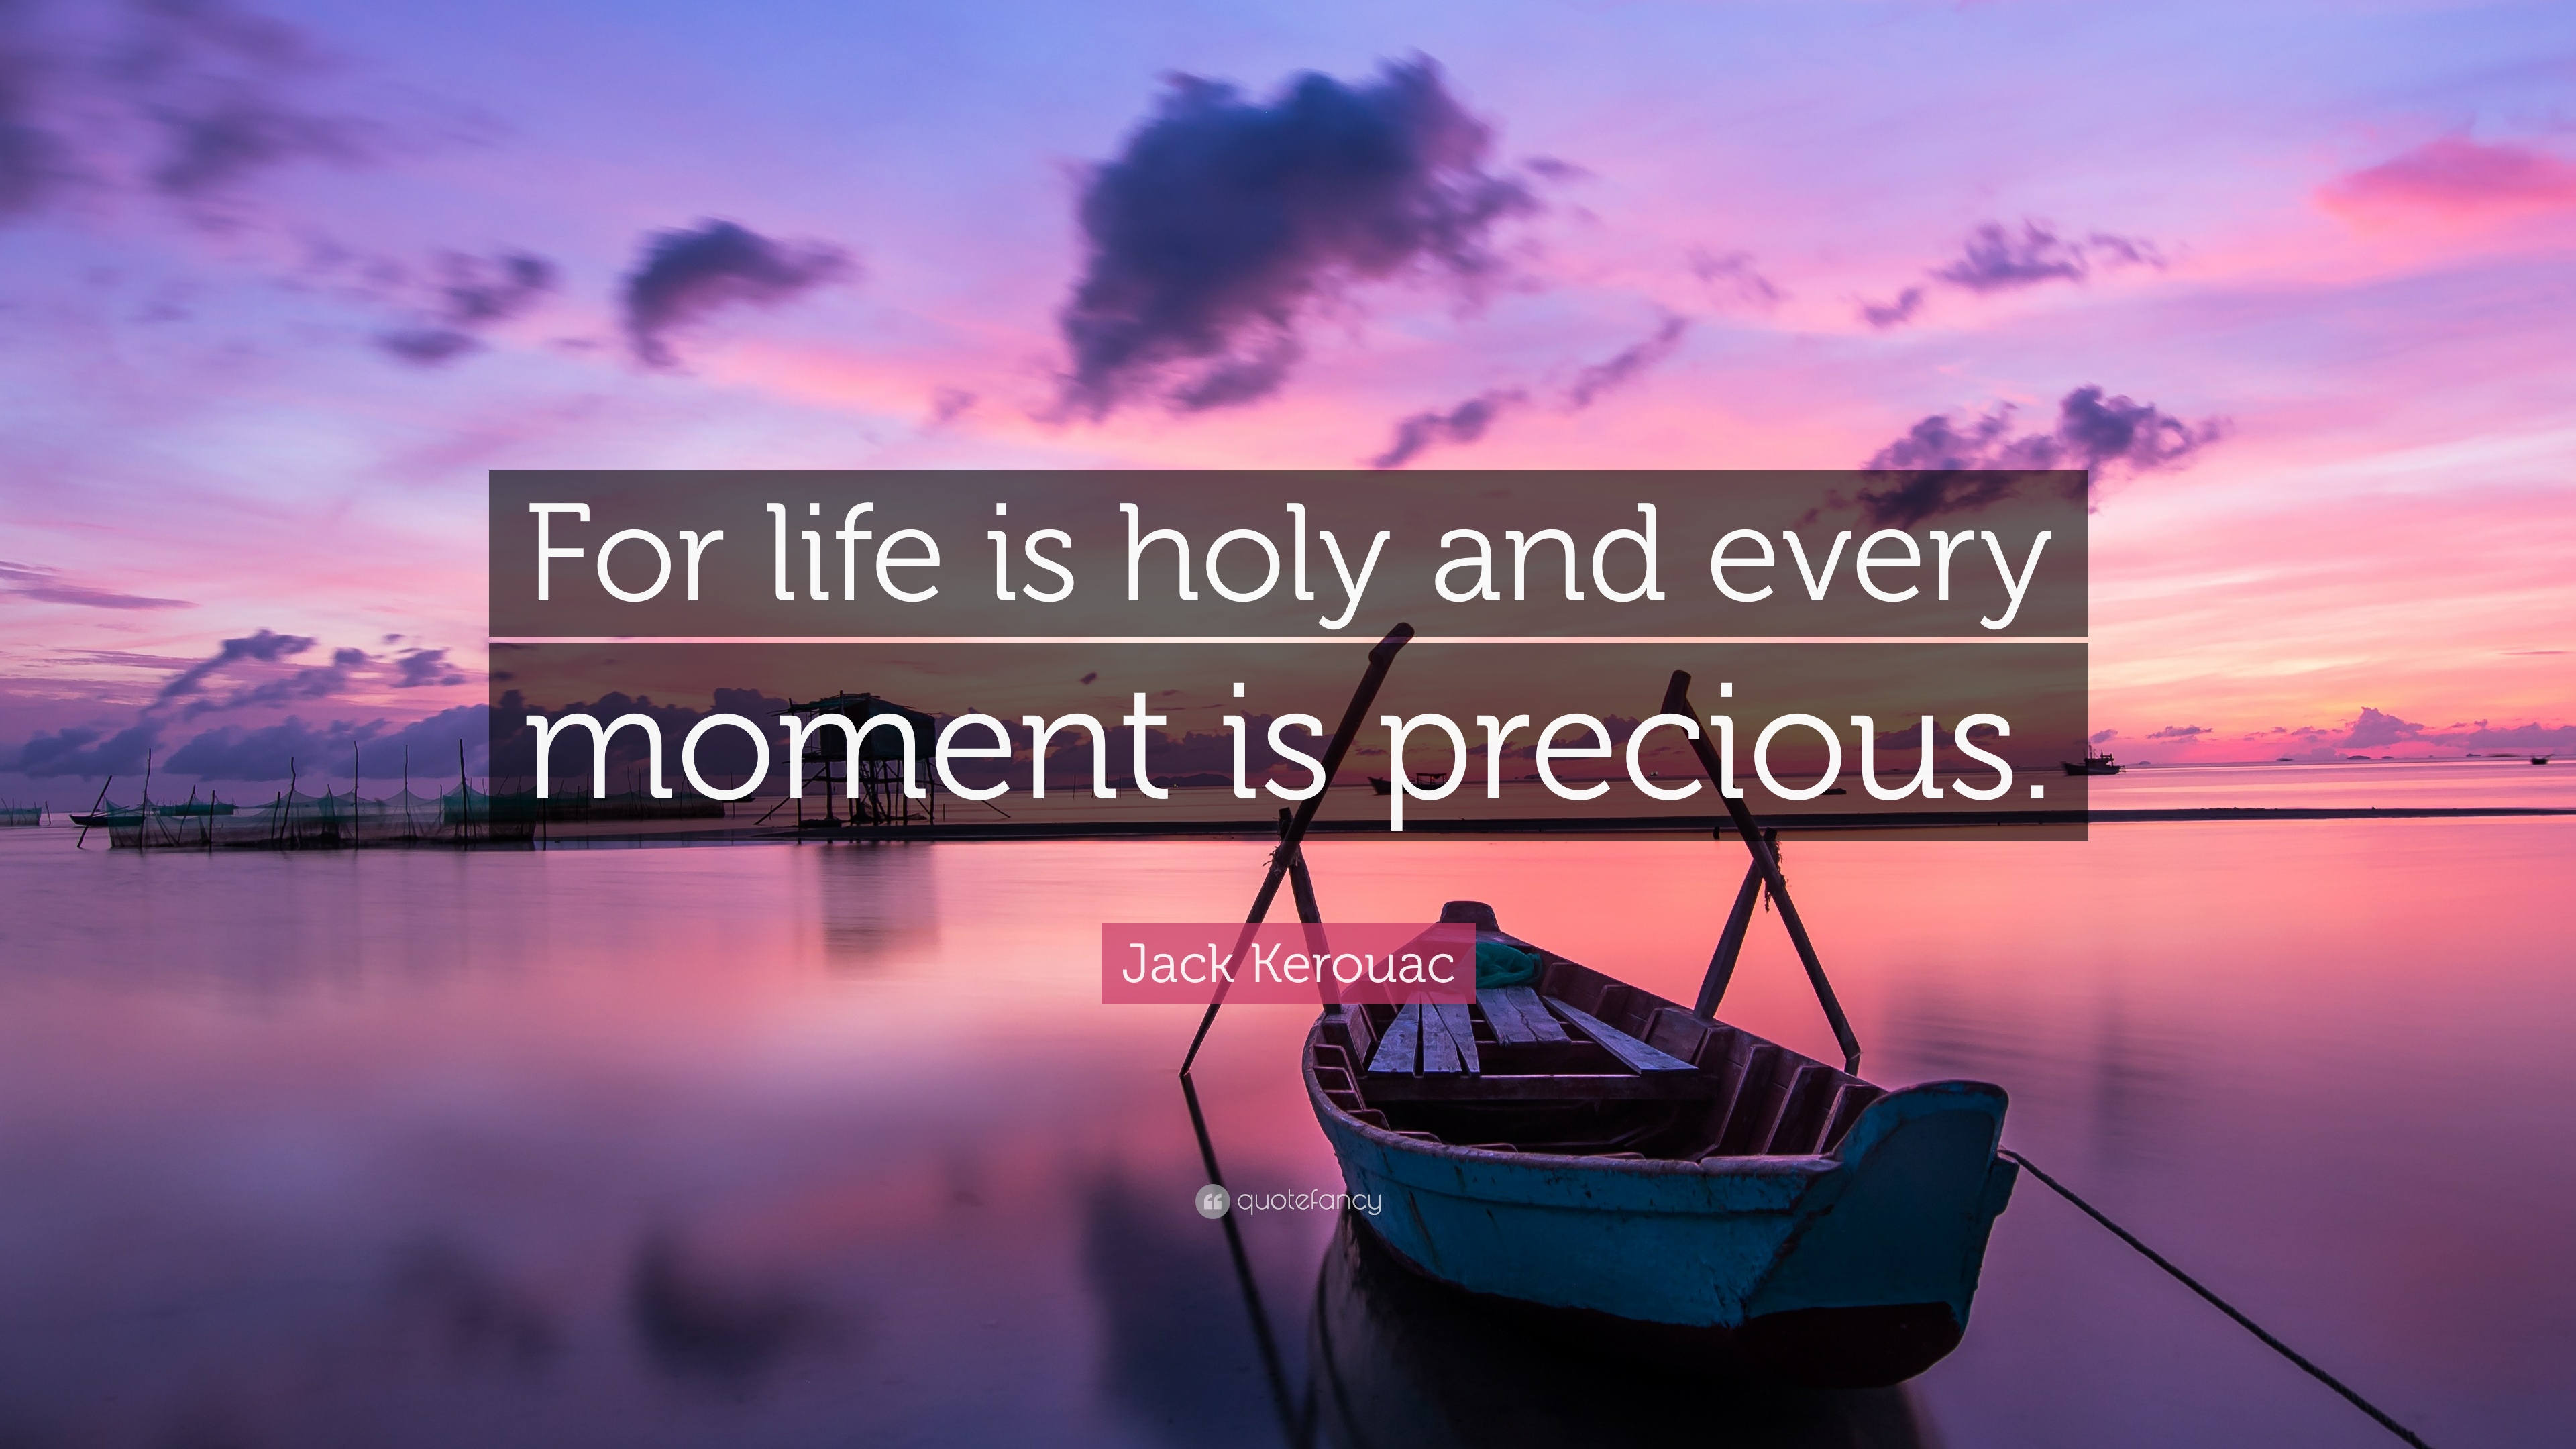 Jack Kerouac Quote: U201cFor Life Is Holy And Every Moment Is Precious.u201d